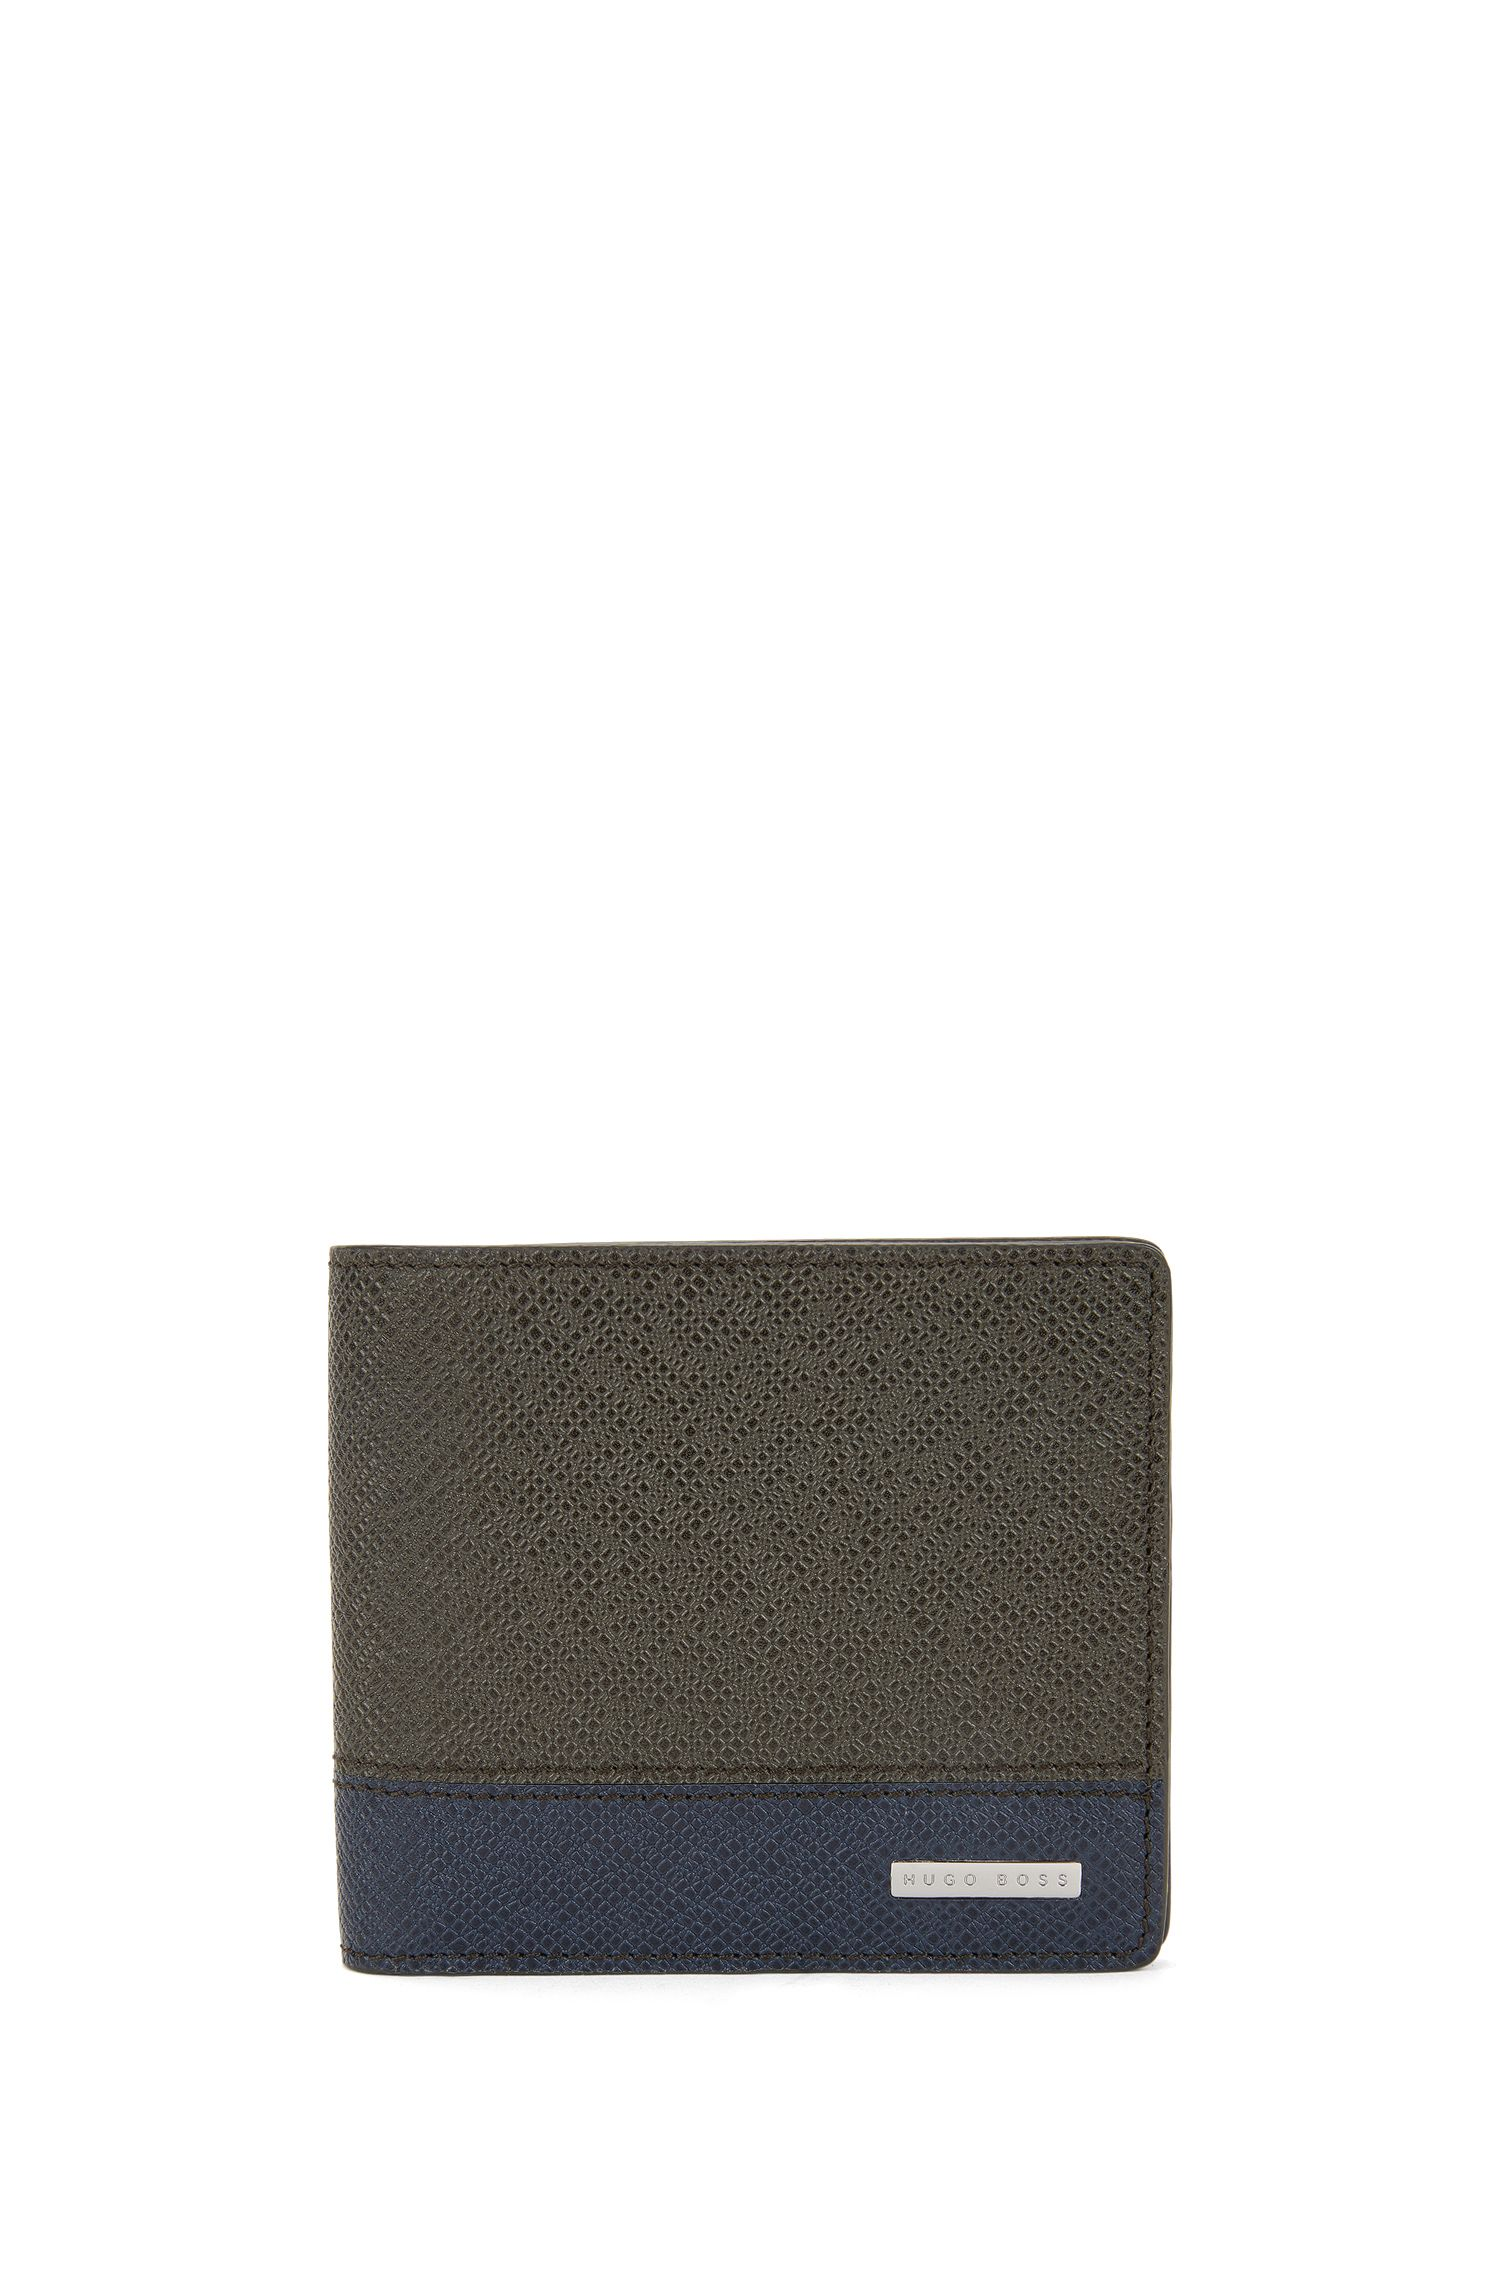 Portefeuille de la collection Signature en cuir palmellato color block, à deux volets